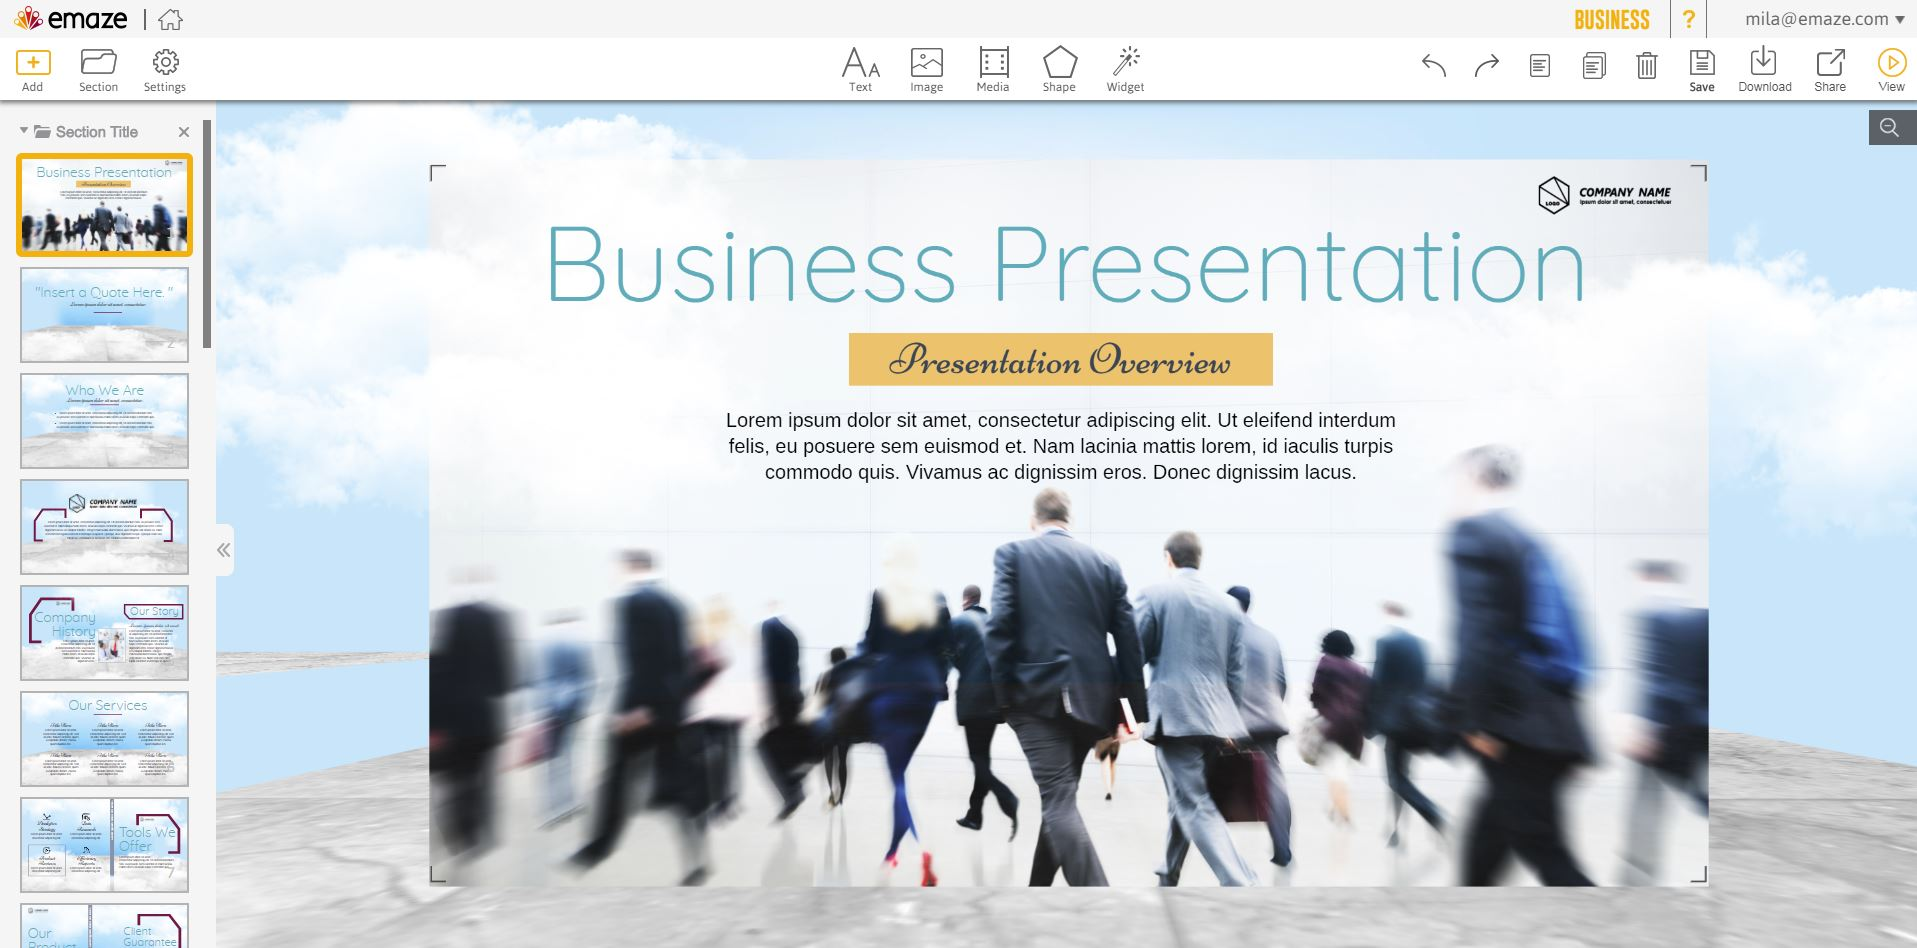 Emaze editor for business presentation